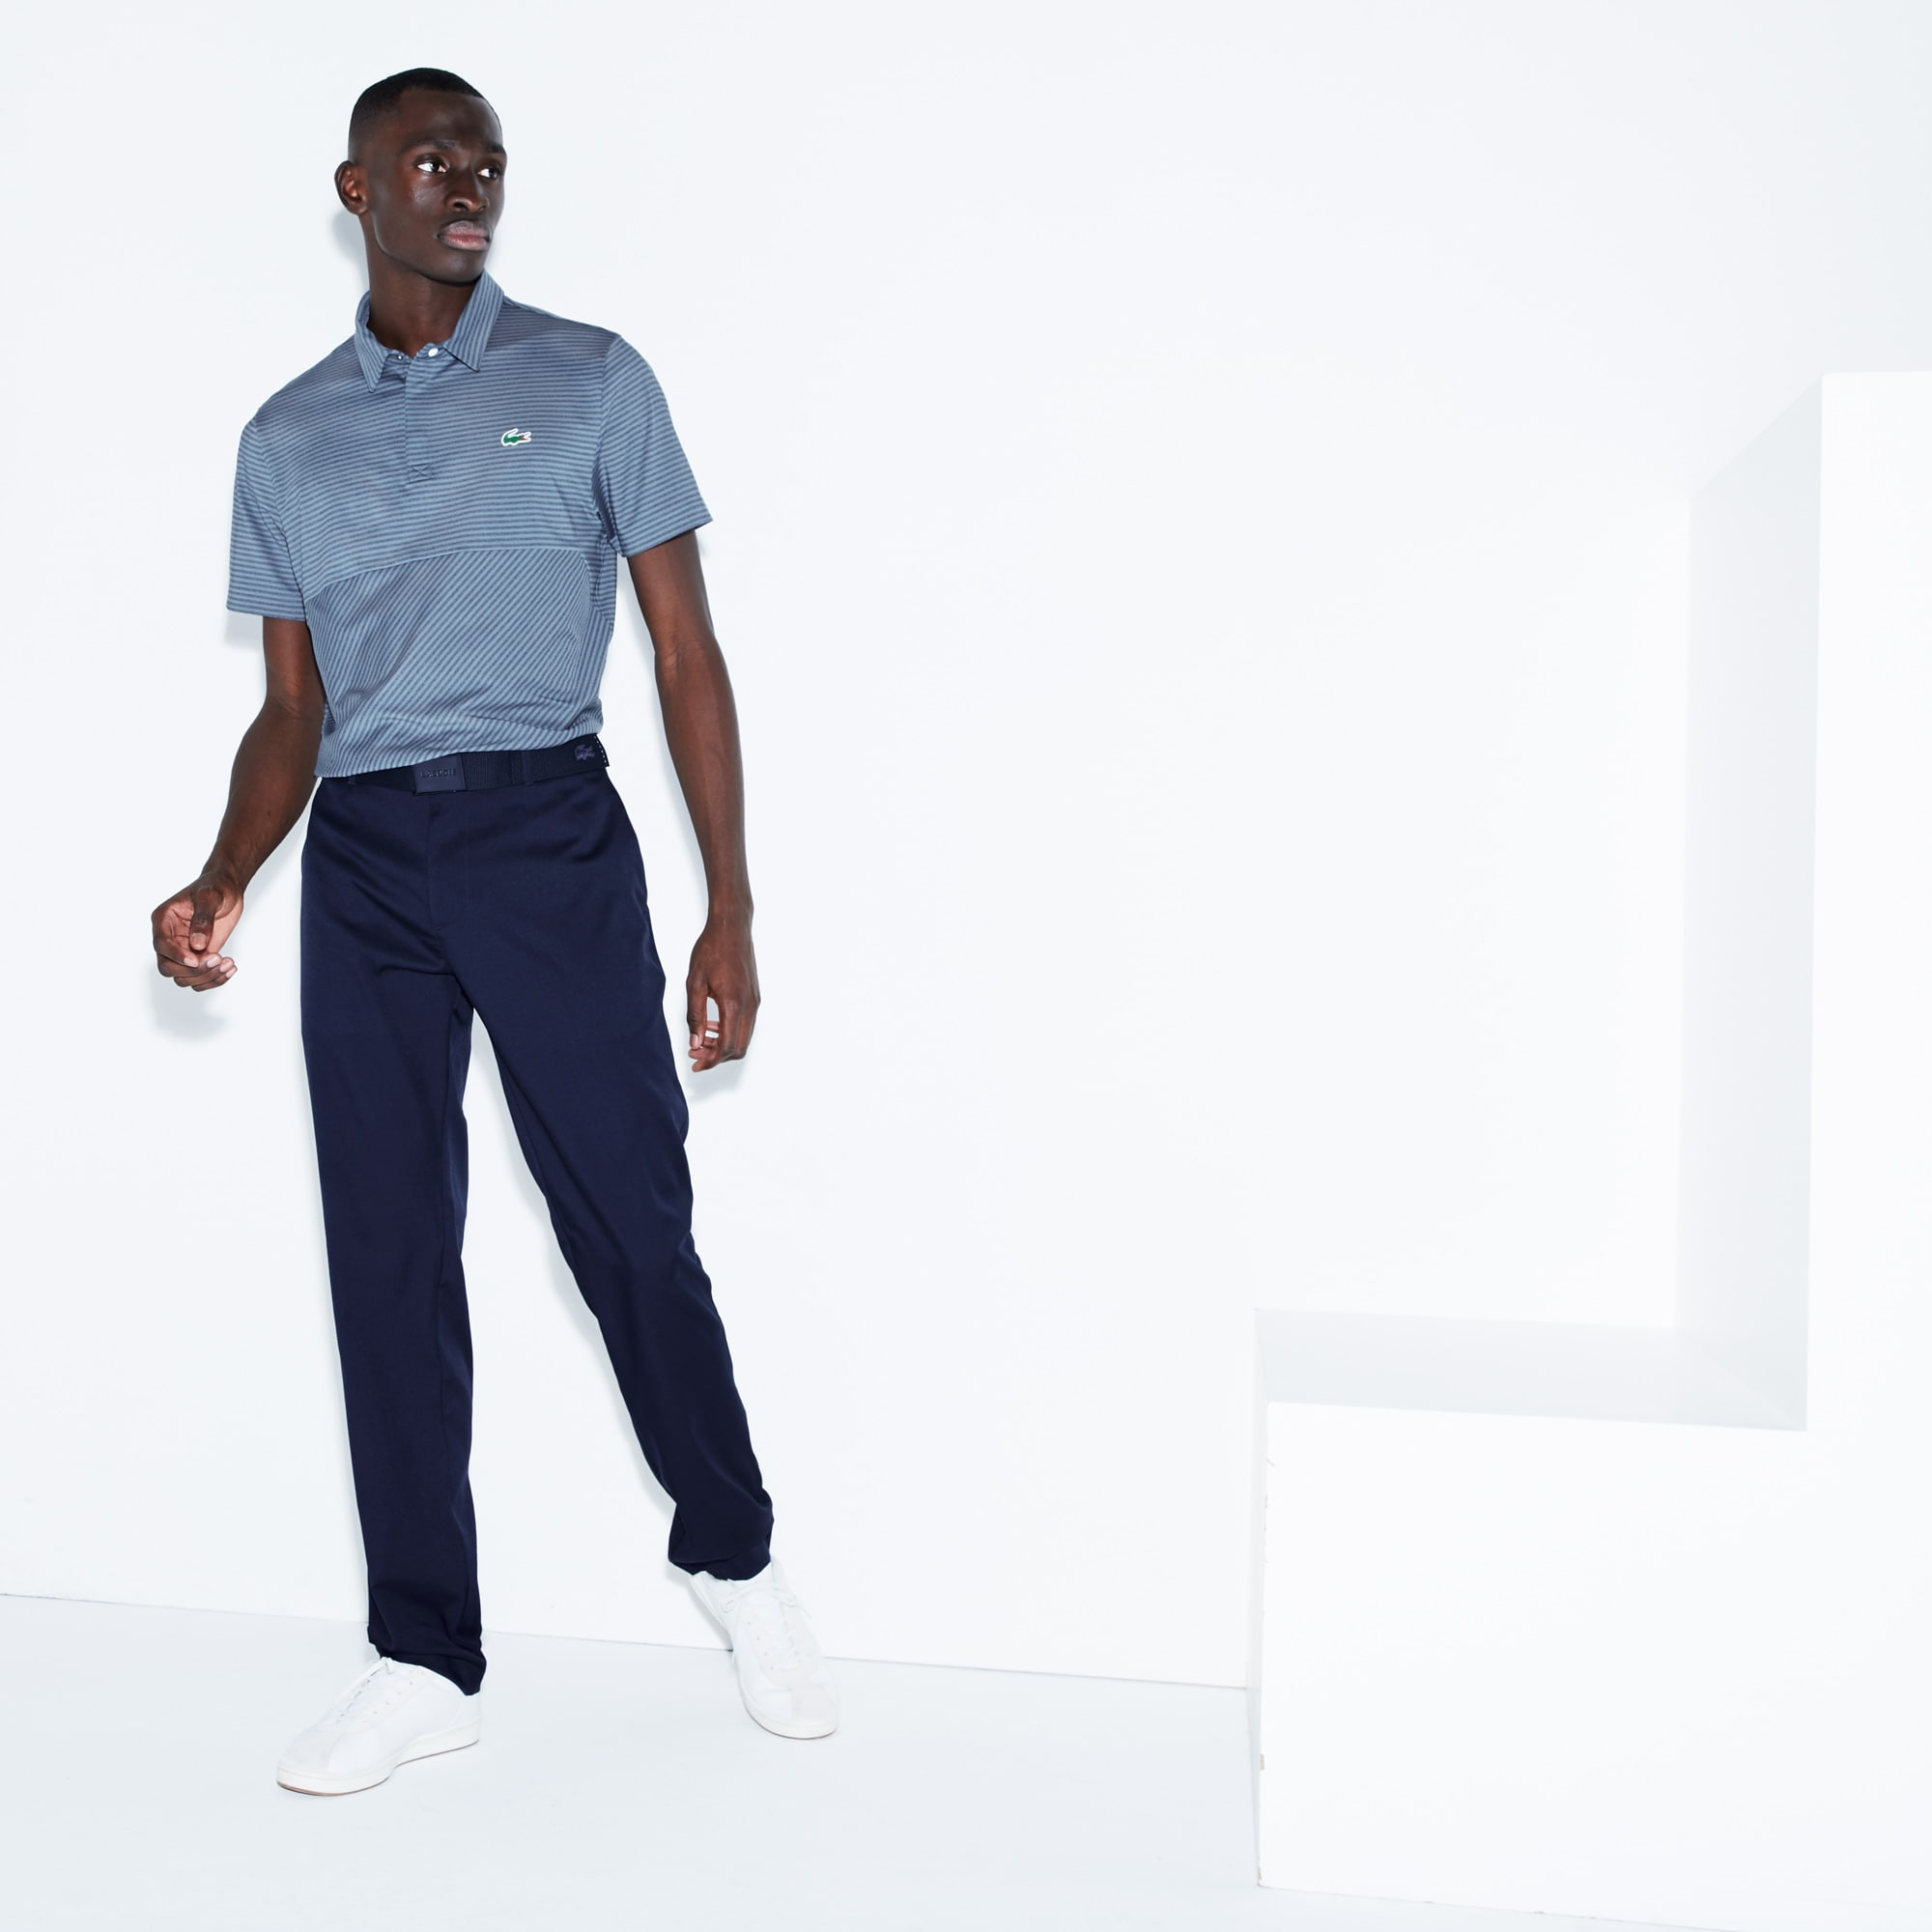 Lacoste Men's Sport Technical Gabardine Golf Chino Pants : Navy Blue